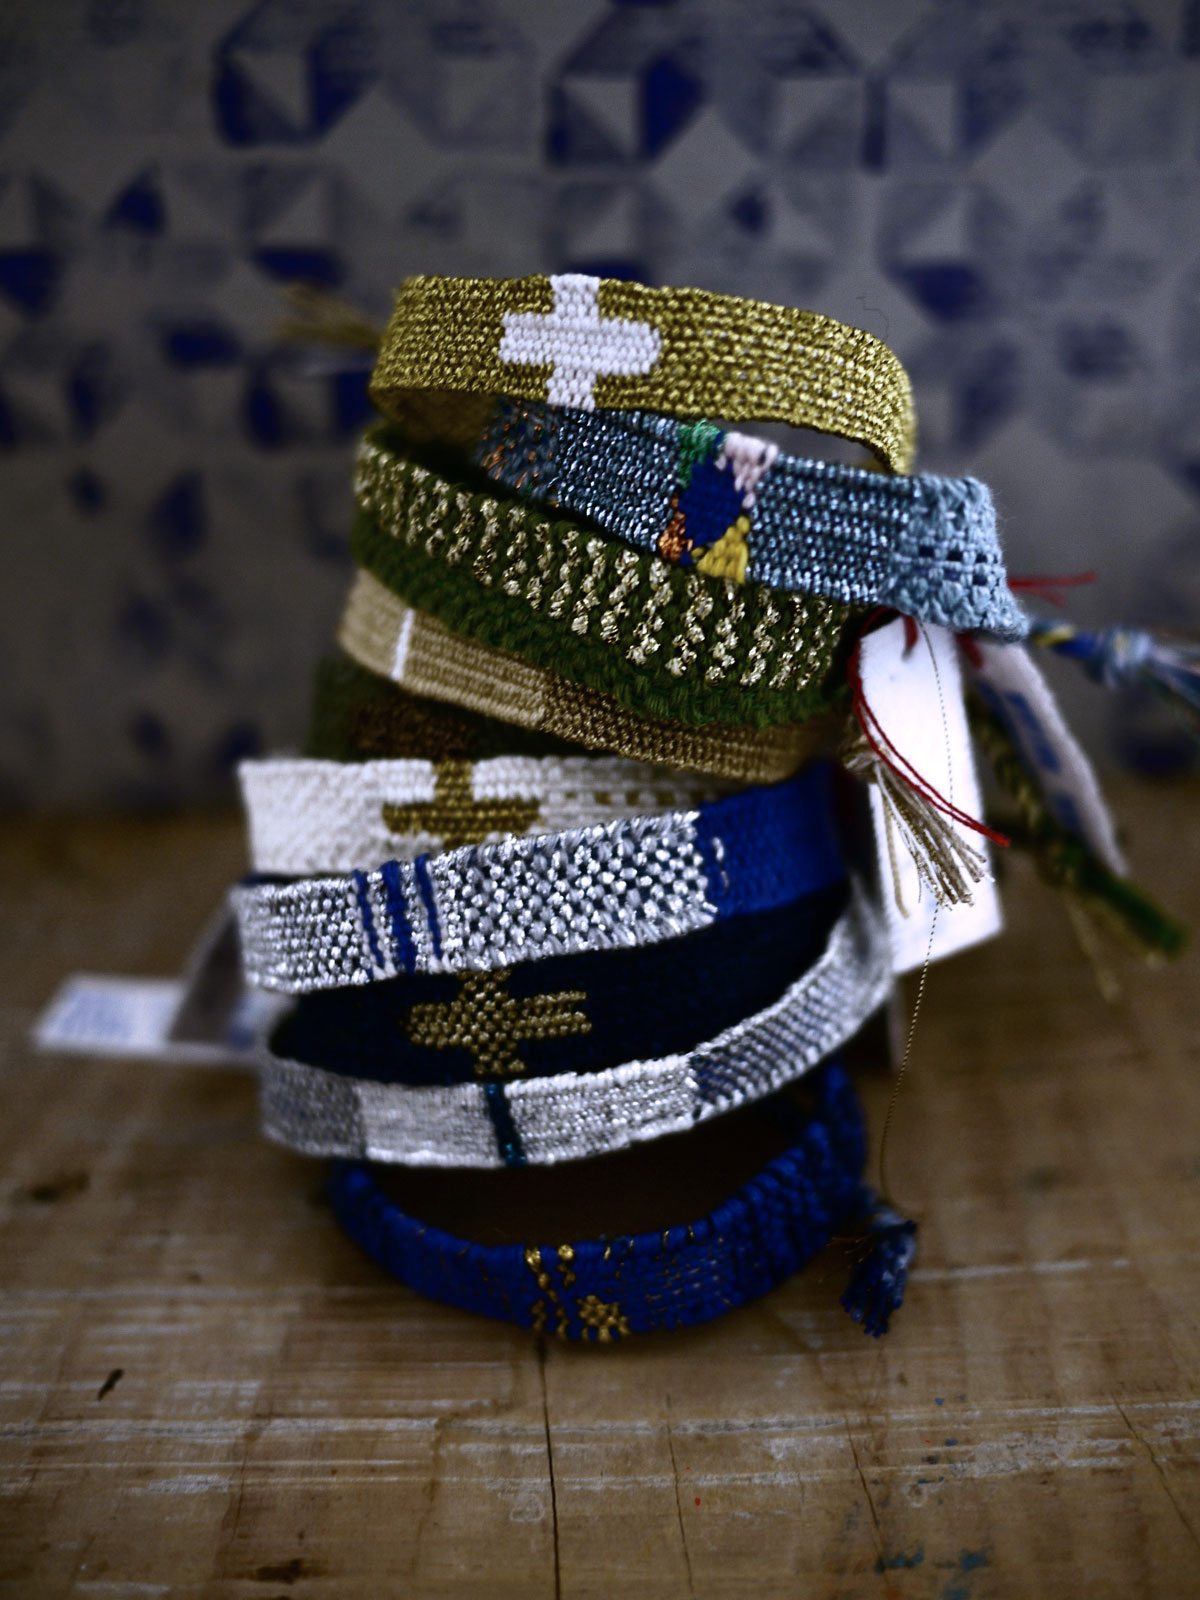 Bracelets LOOM - Design textile by Myriam Balaÿ myriam-balay-vogue-italie-press-review Les Bracelets LOOM sur Vogue Italia L'appartement